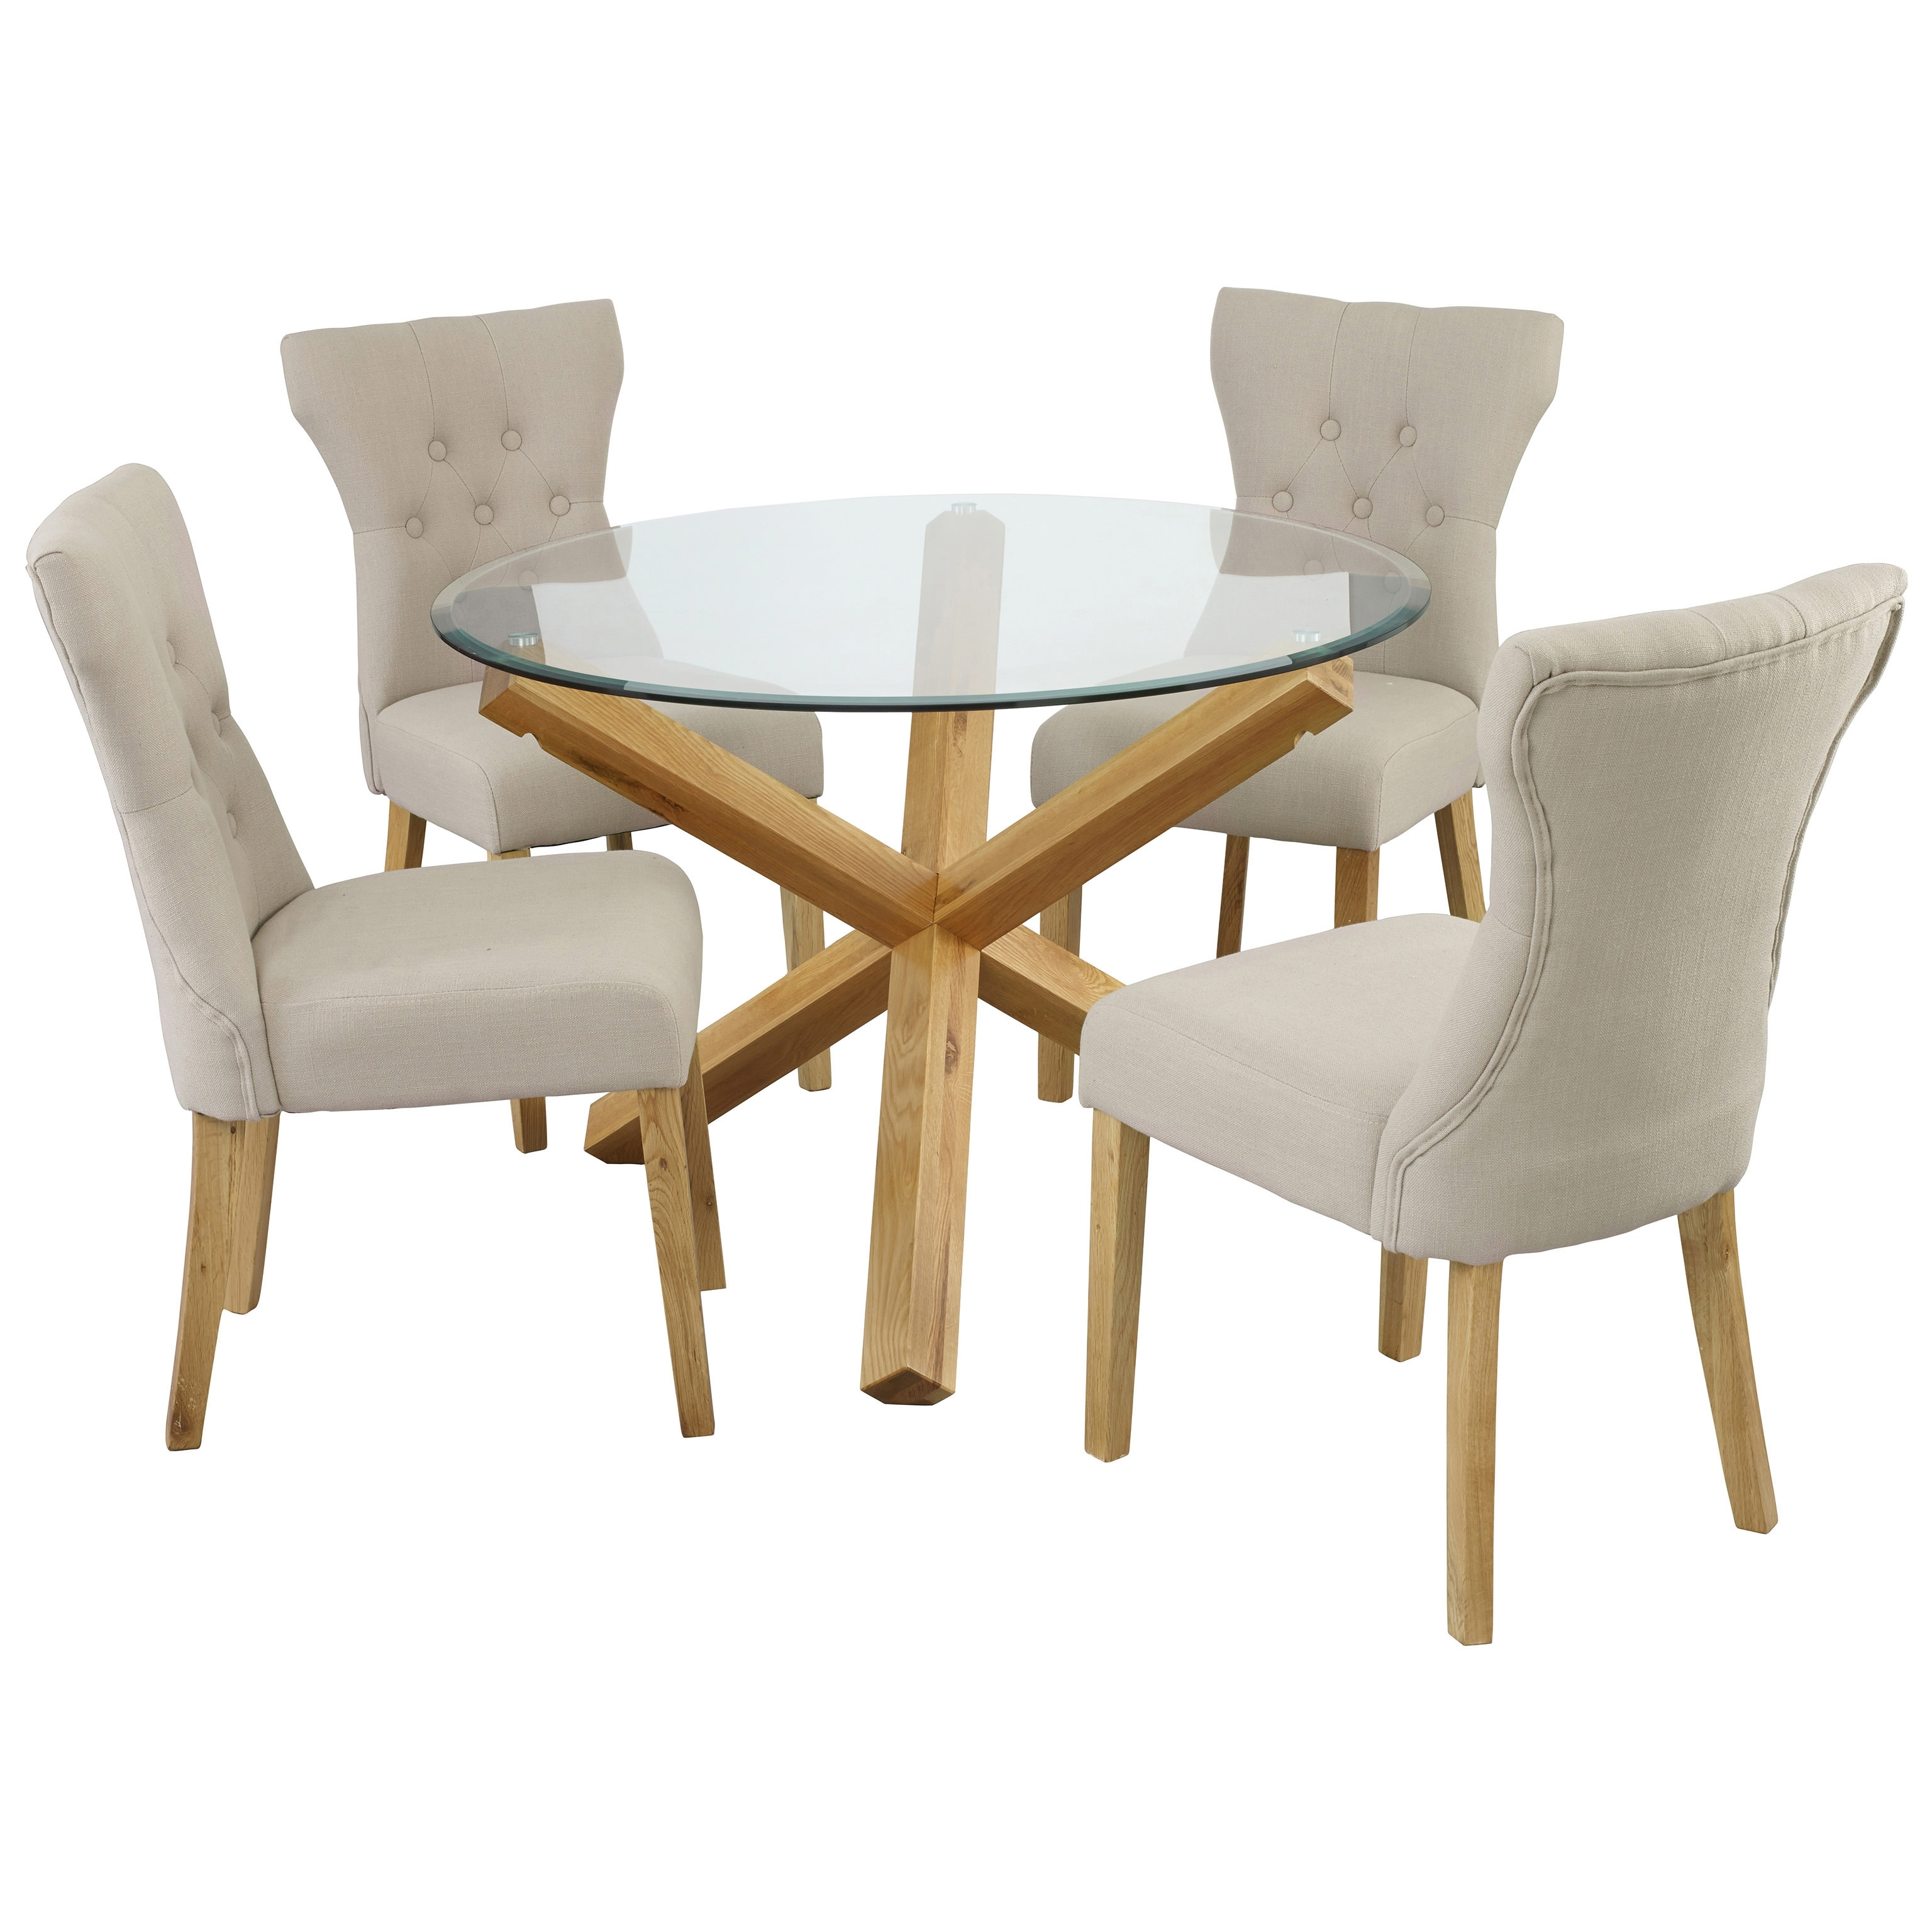 Oak & Glass Round Dining Table And Chair Set With 4 Fabric Seats Intended For Well Known Oak Dining Set 6 Chairs (View 12 of 25)